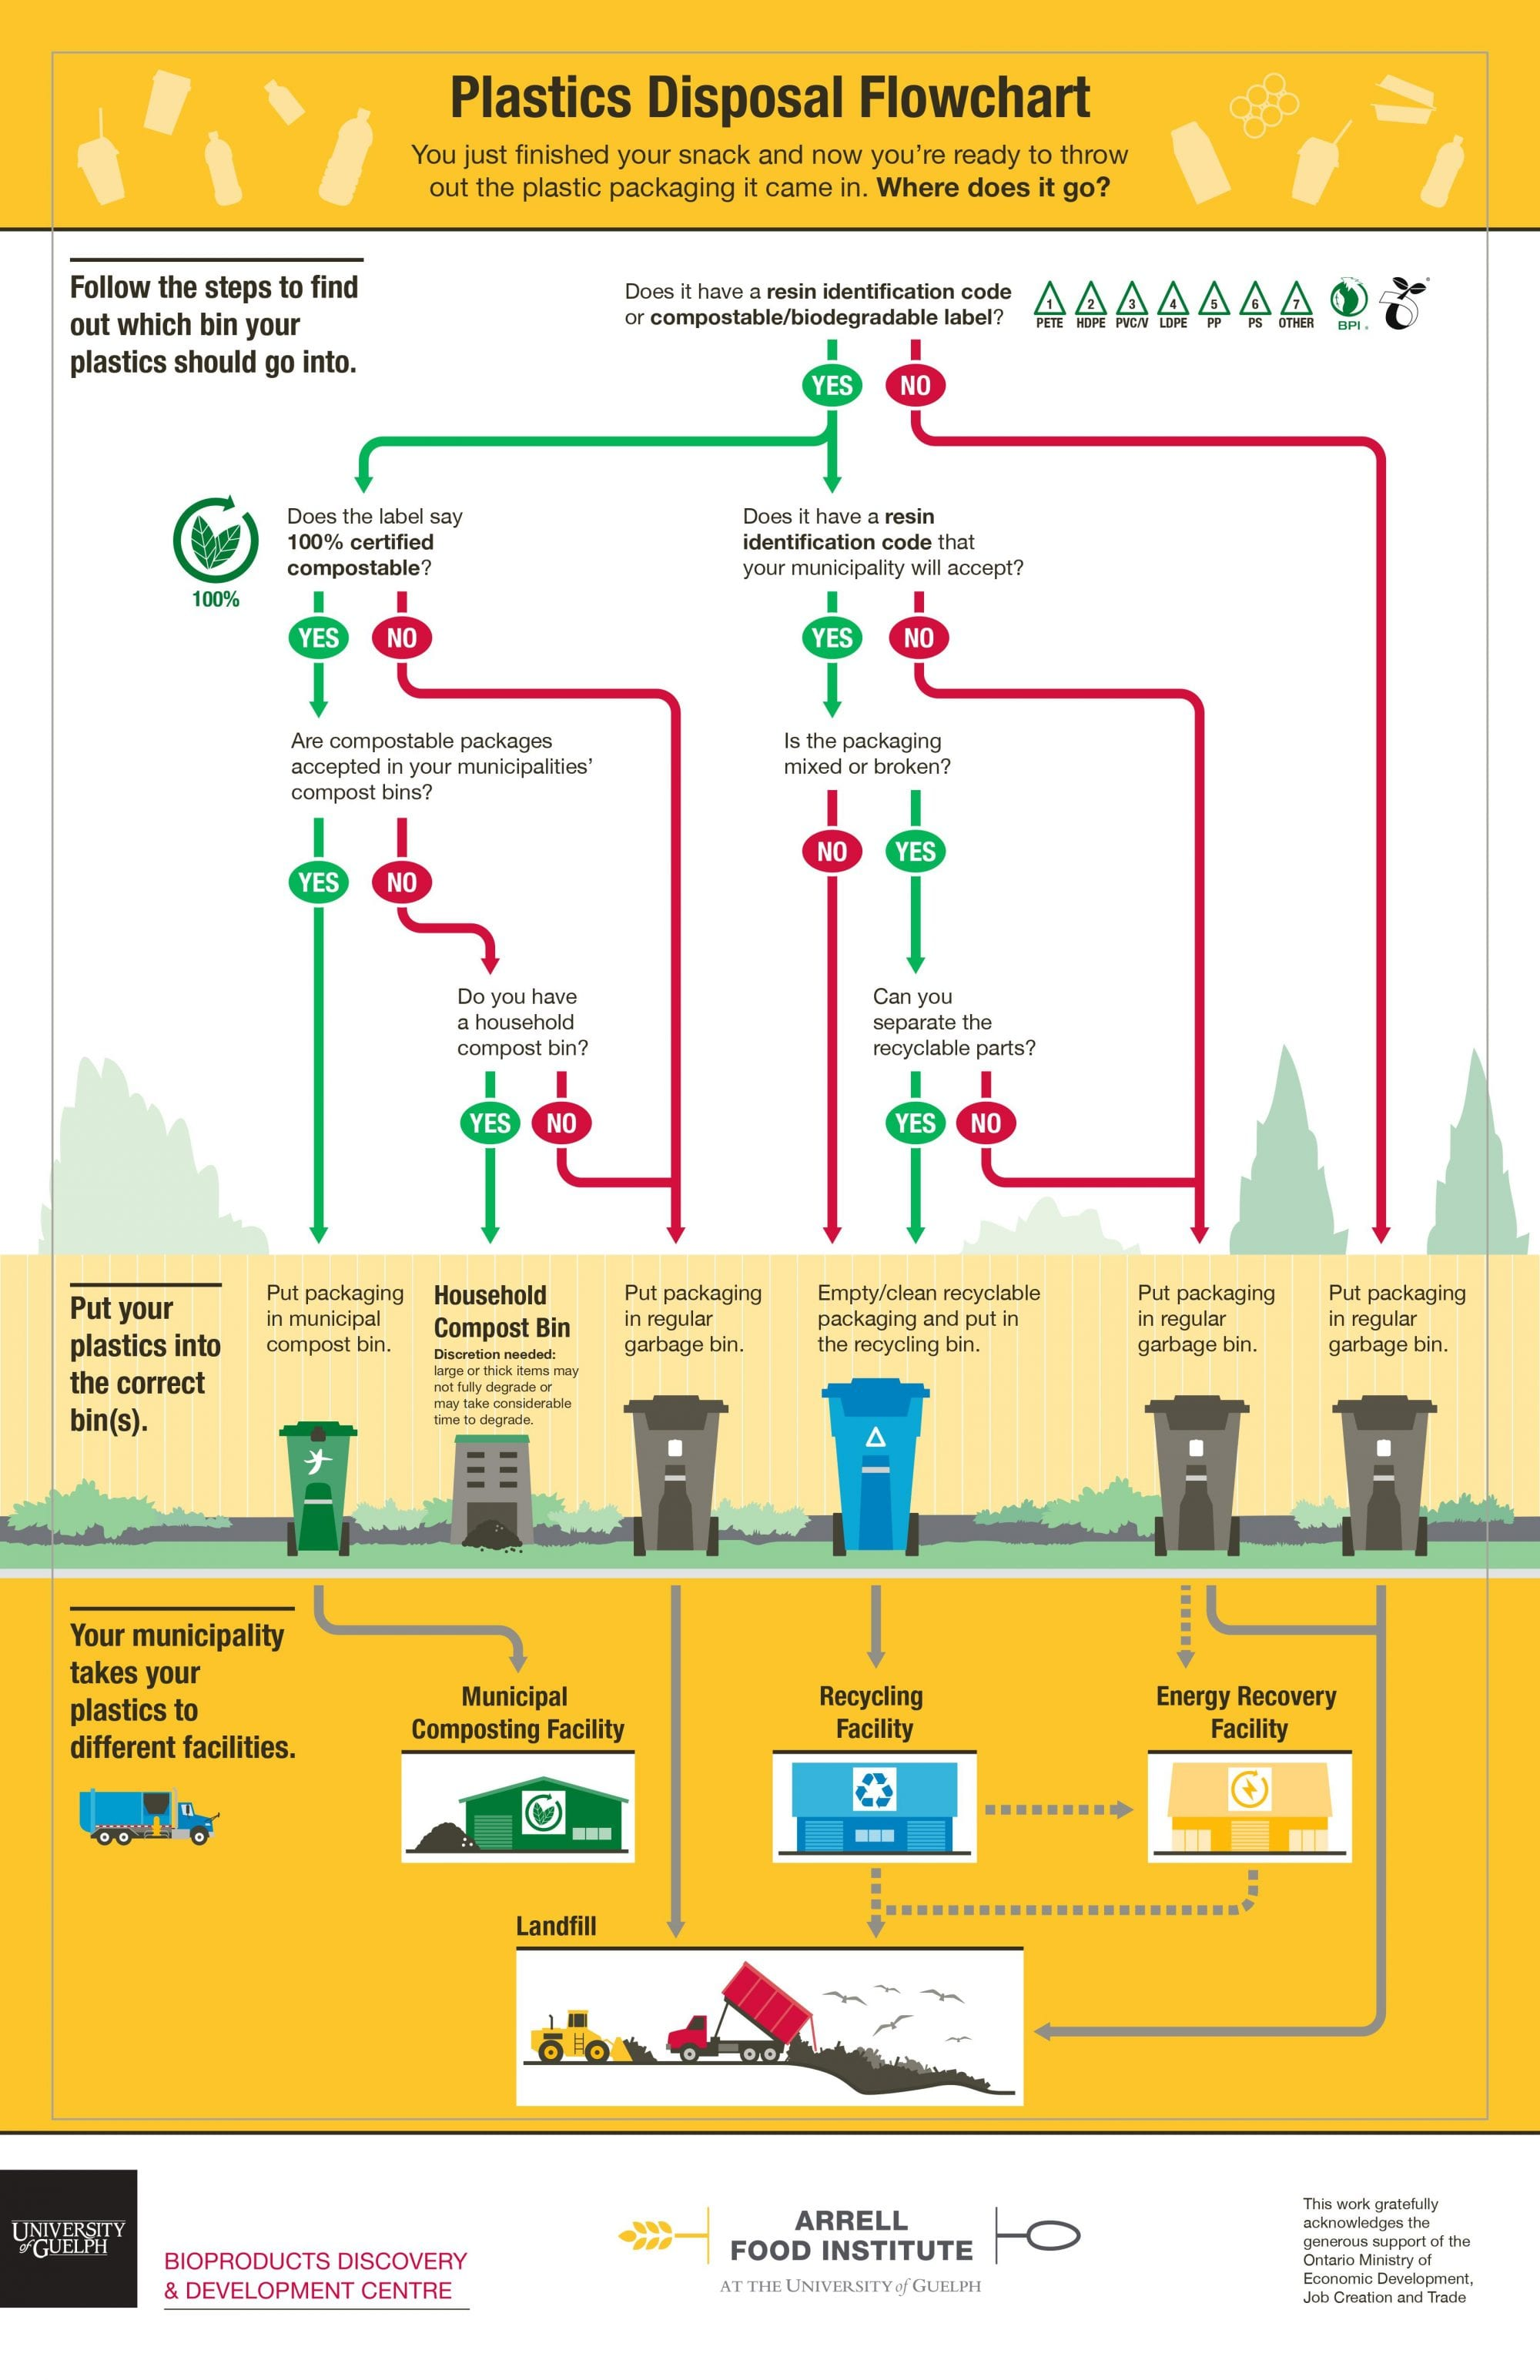 This infographic guides individuals through a yes/no flow chart to support them in the process of deciding which disposal bin to put their packaging or their parts in. The flowchart highlights the importance of reading the resin identification code before putting plastics into the blue bin and looking for the compostable labels before putting what may appear to be a biodegradable product into the compost bin. The flow chart also guides individuals through the importance of separating plastics (and plastic parts) and identifying if a plastic is broken to ensure the plastics that are recyclable go into the blue bin and those that are not go into the gray bin. Packaging disposal can be messy, but by taking a few extra moments to determine the right bin for waste we are contributing to a more efficient waste disposal system.